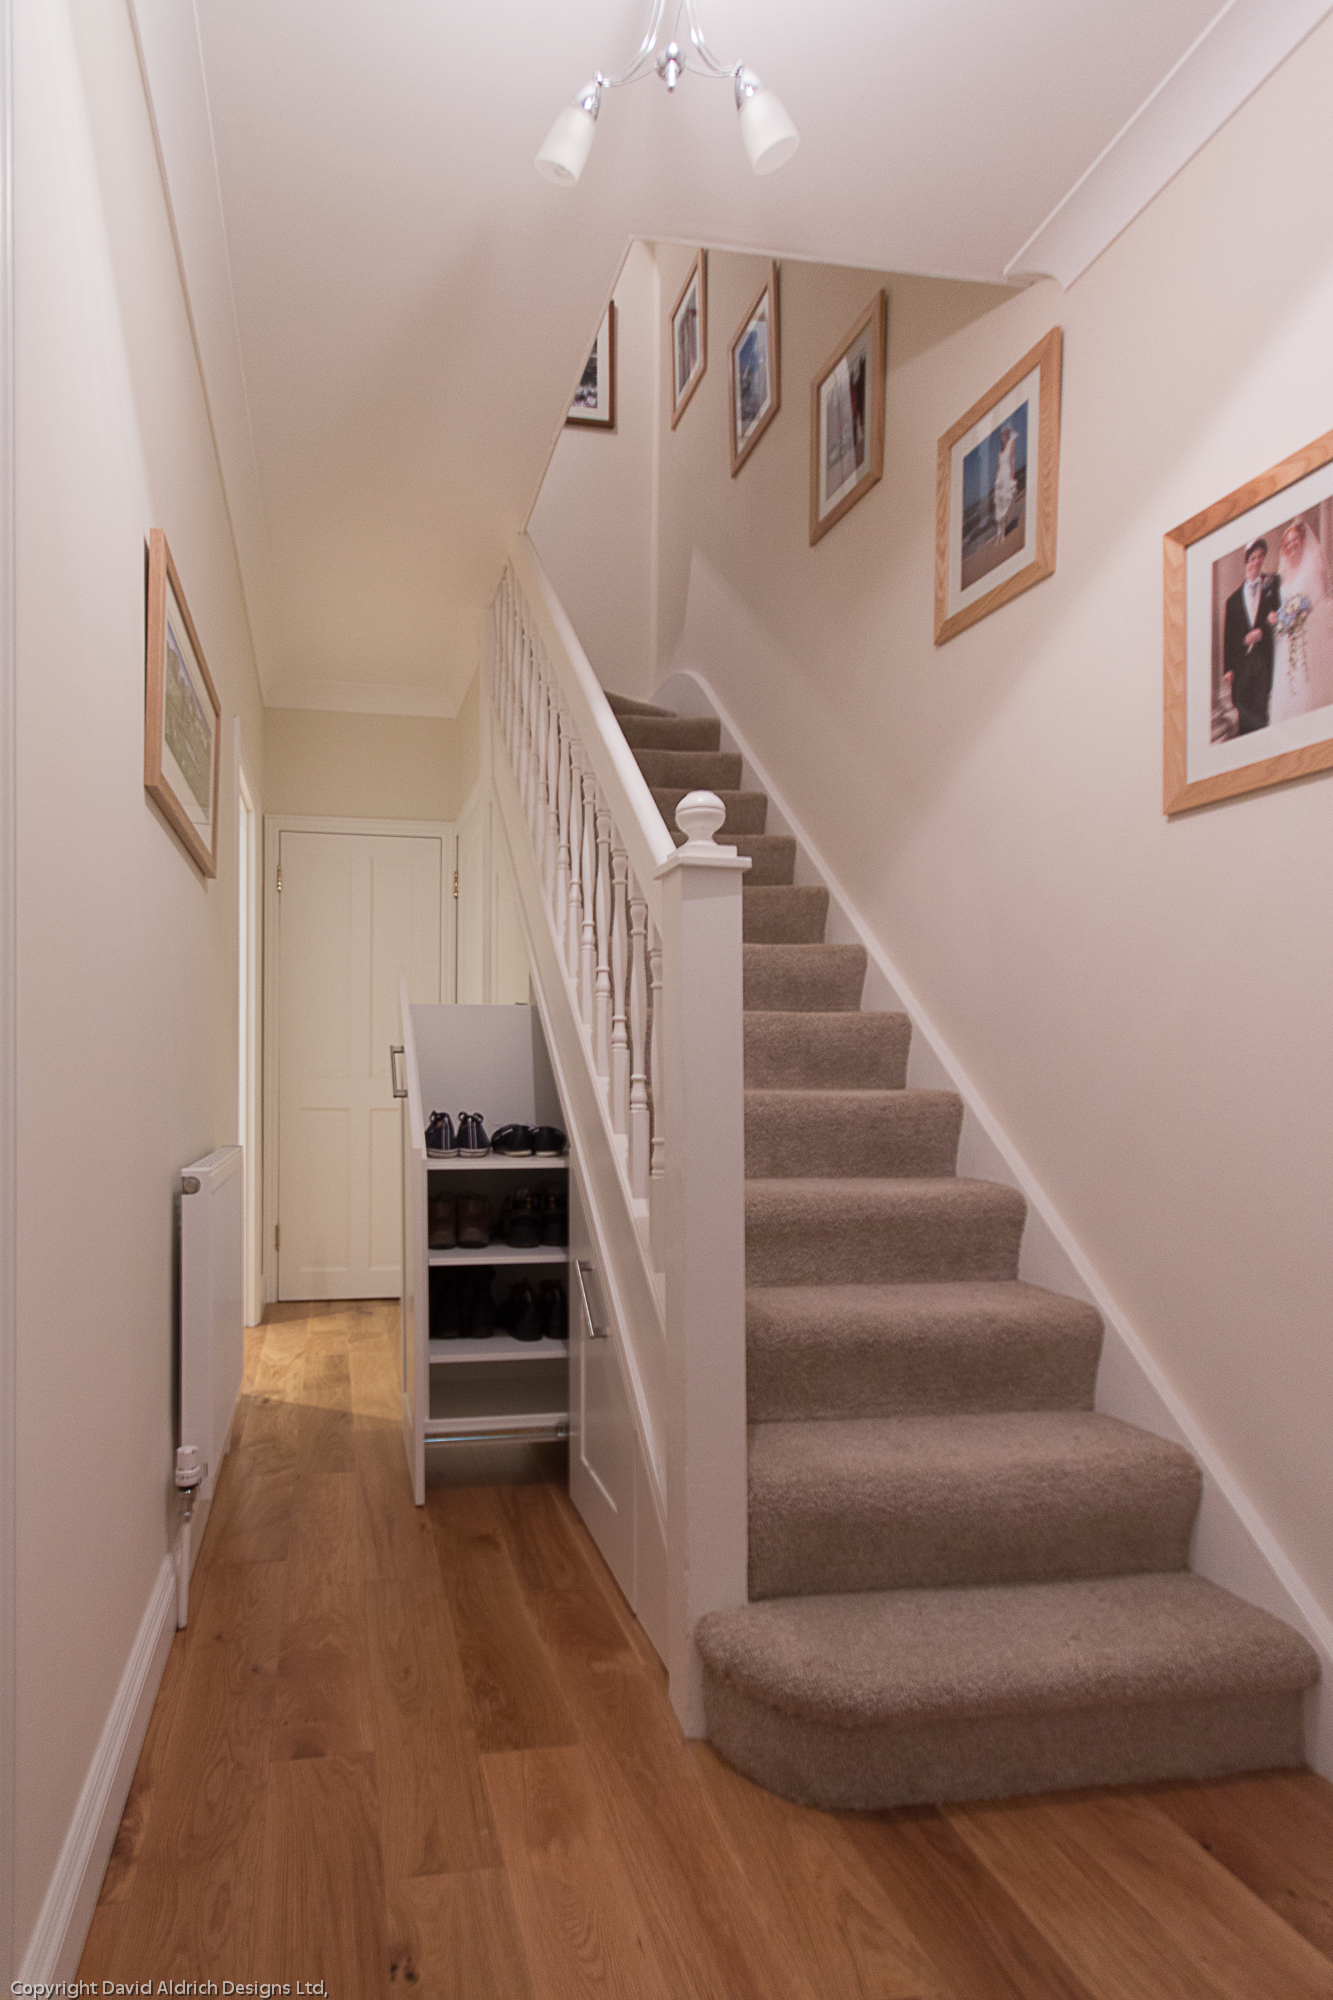 Hallway storage solutions London (3 of 4).jpg